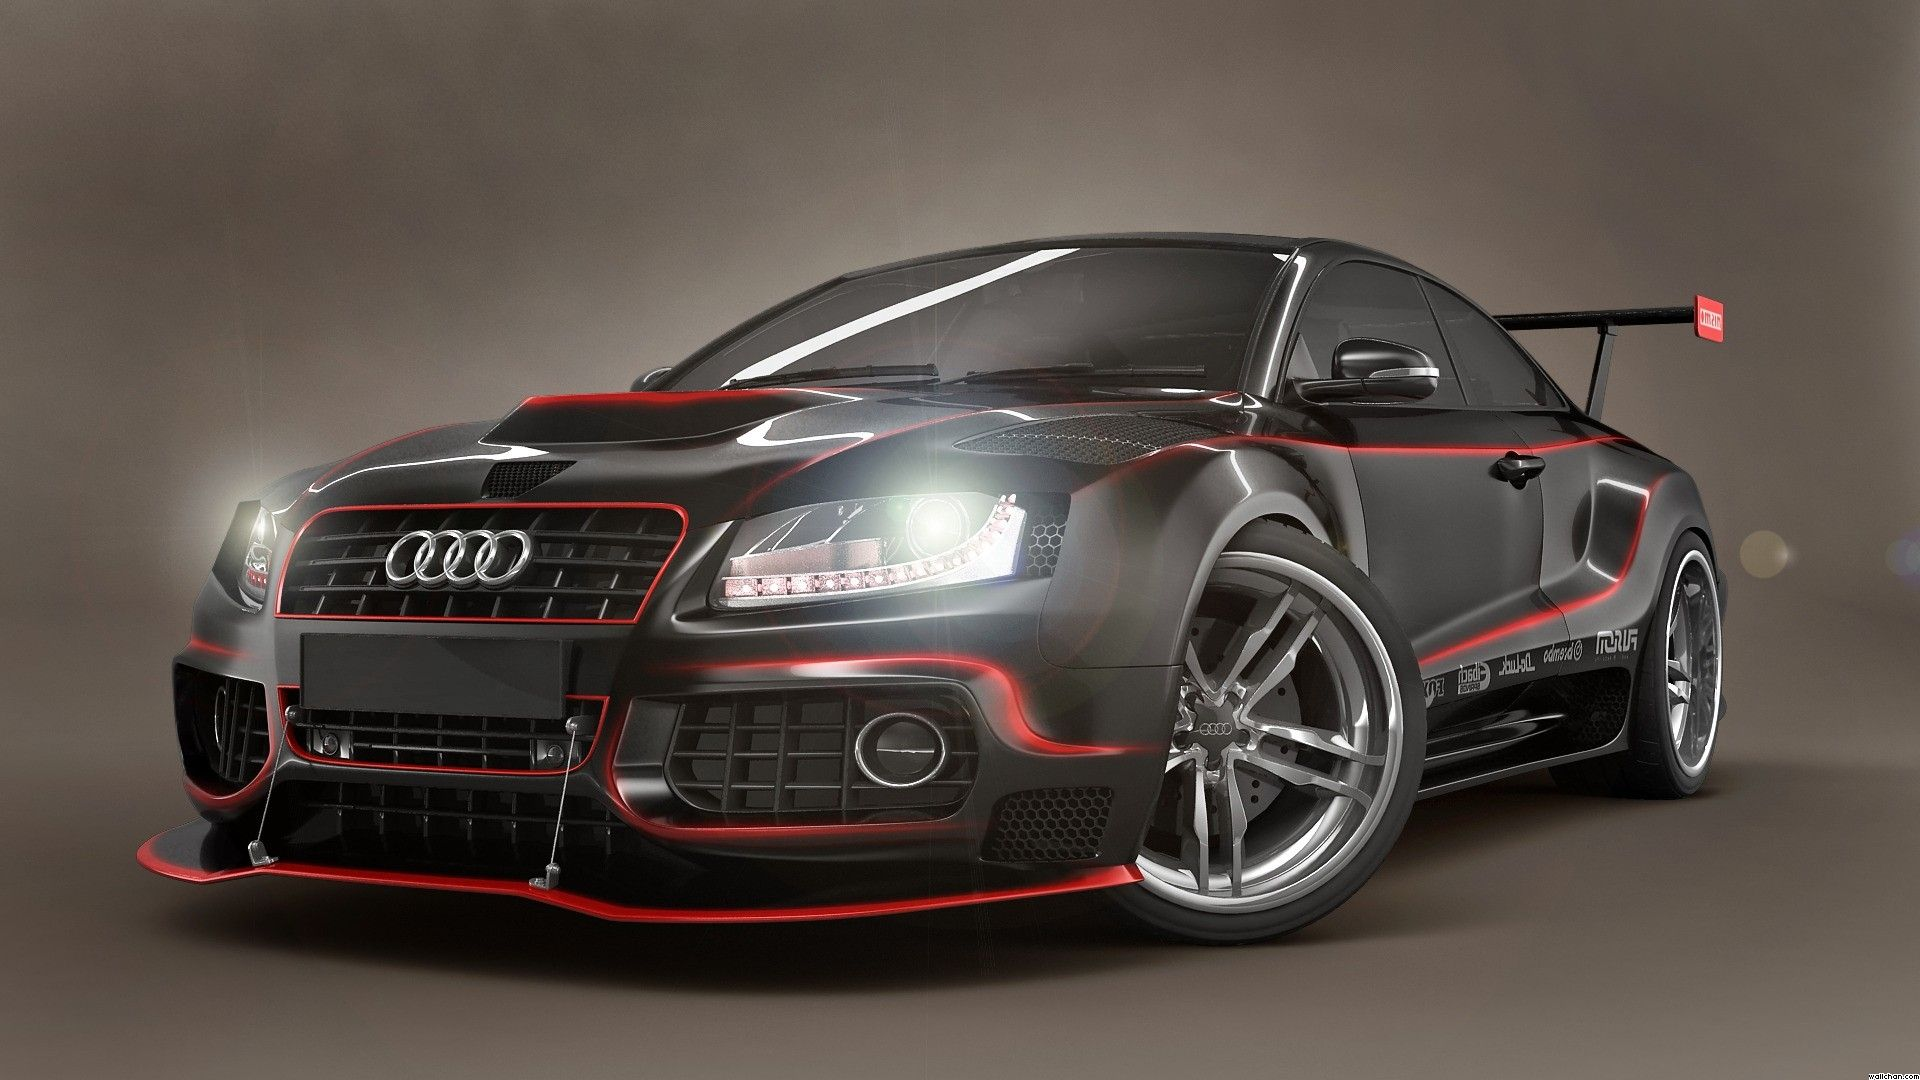 Audi Wallpapers HD Backgrounds Wallpapers